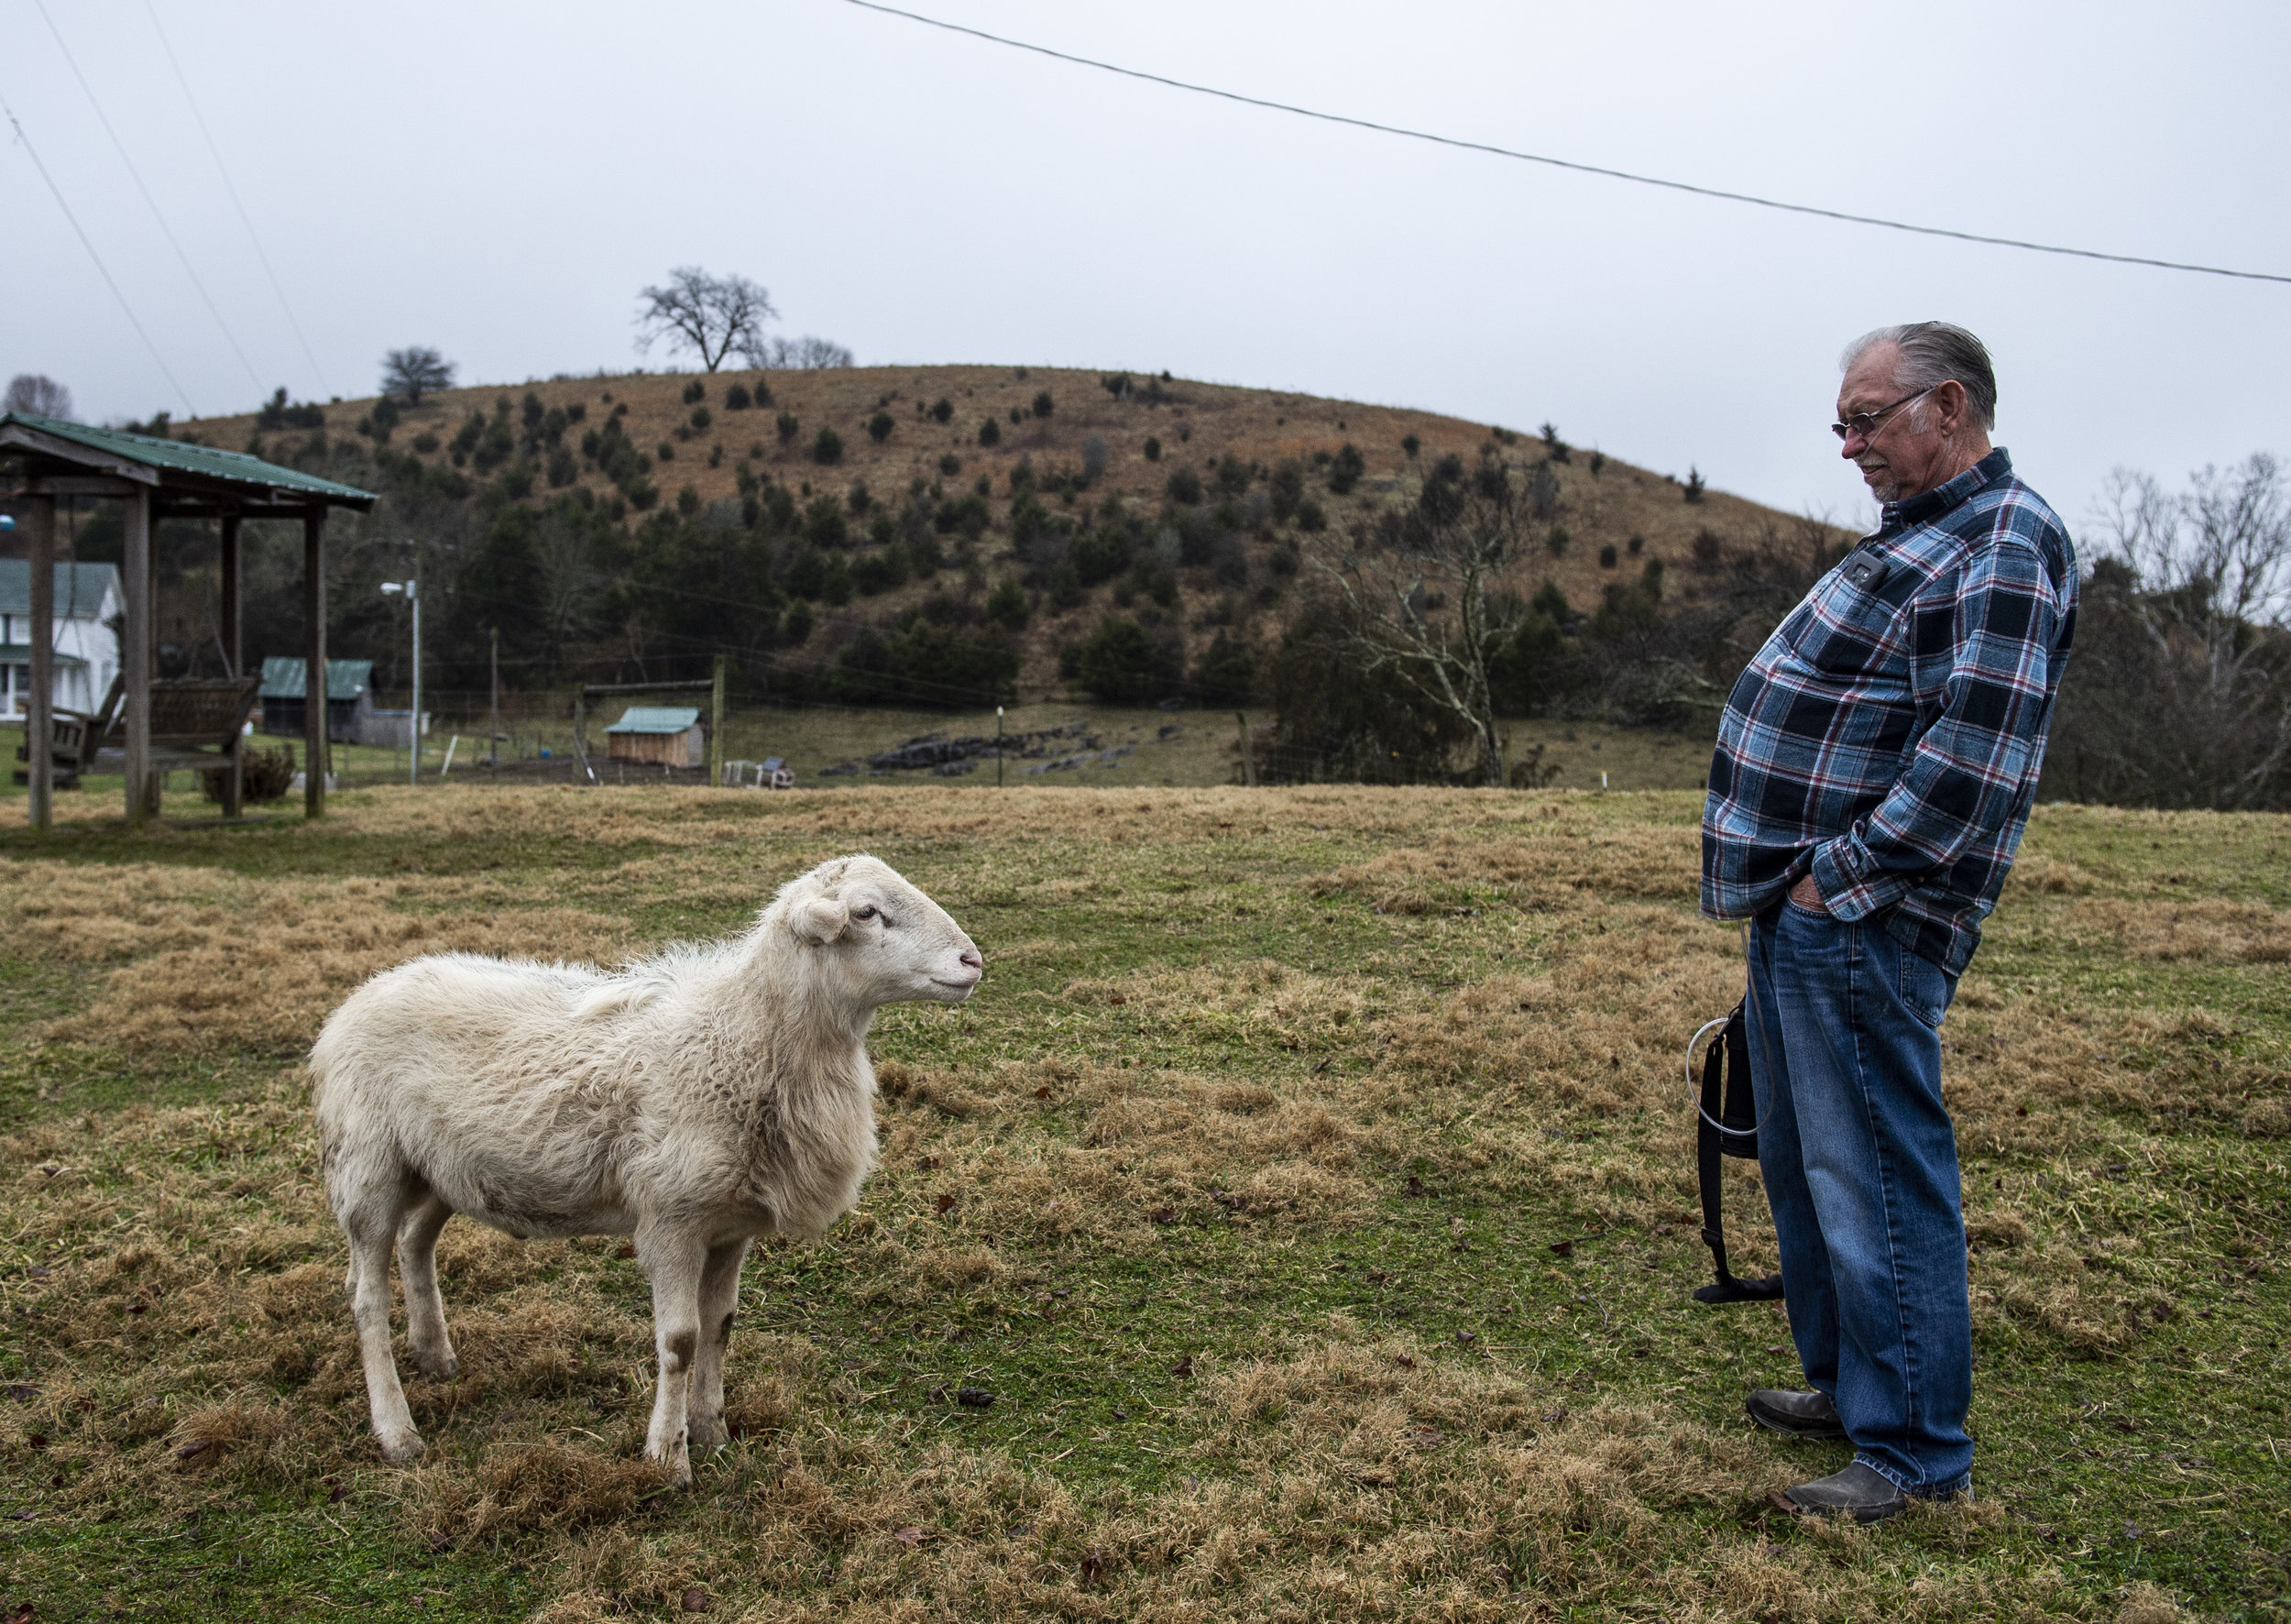 Paul Kinder and one his rams share a moment on his homestead on the outskirts of Honaker, Virginia on Friday, January 18. Paul, who worked in the mines since he was a teenager, lives with Black Lung Disease. While it limits his mobility, he makes it a point to 'take it slow' and get outside to check on his rams and chickens.